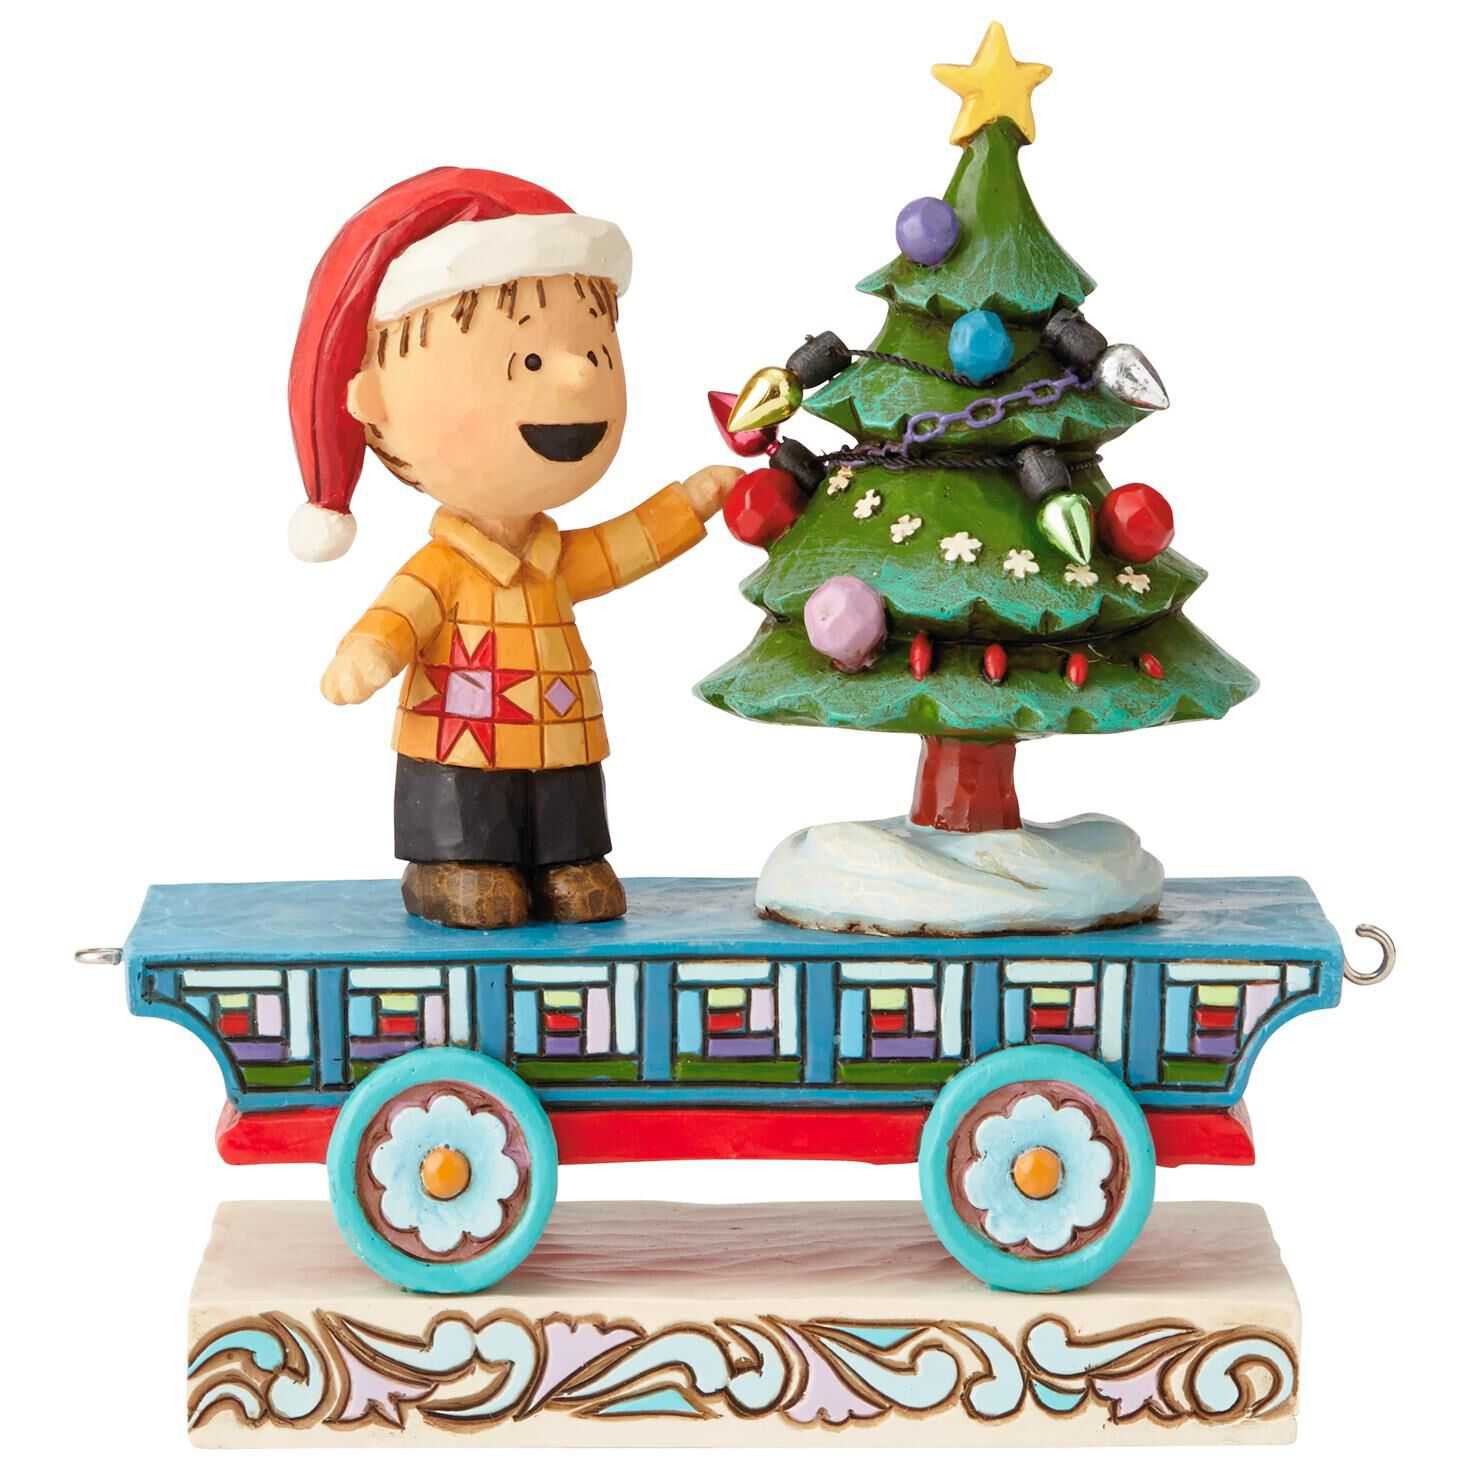 hight resolution of jim shore peanuts linus on christmas train mini figurine 4 5